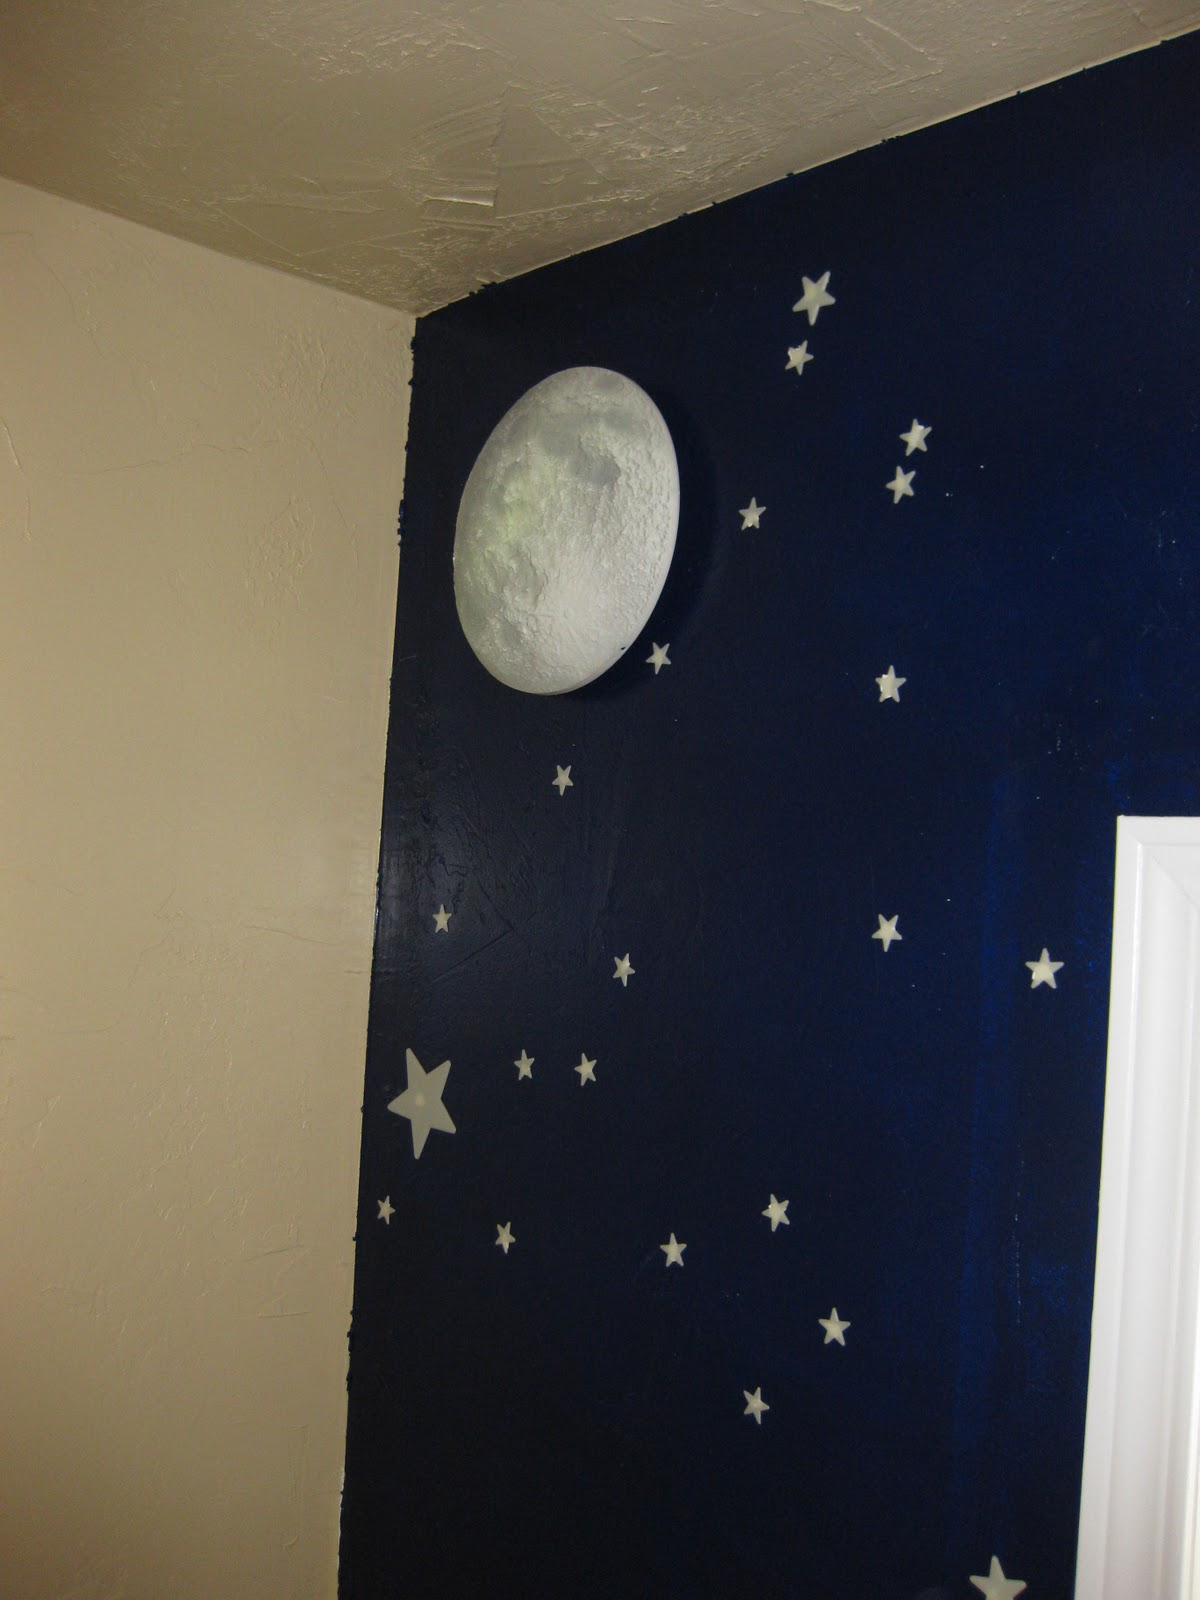 Galaxy Lights For Bedroom 4 Growing Boys A Boys Room Astronomy Style Project 36 Of 52